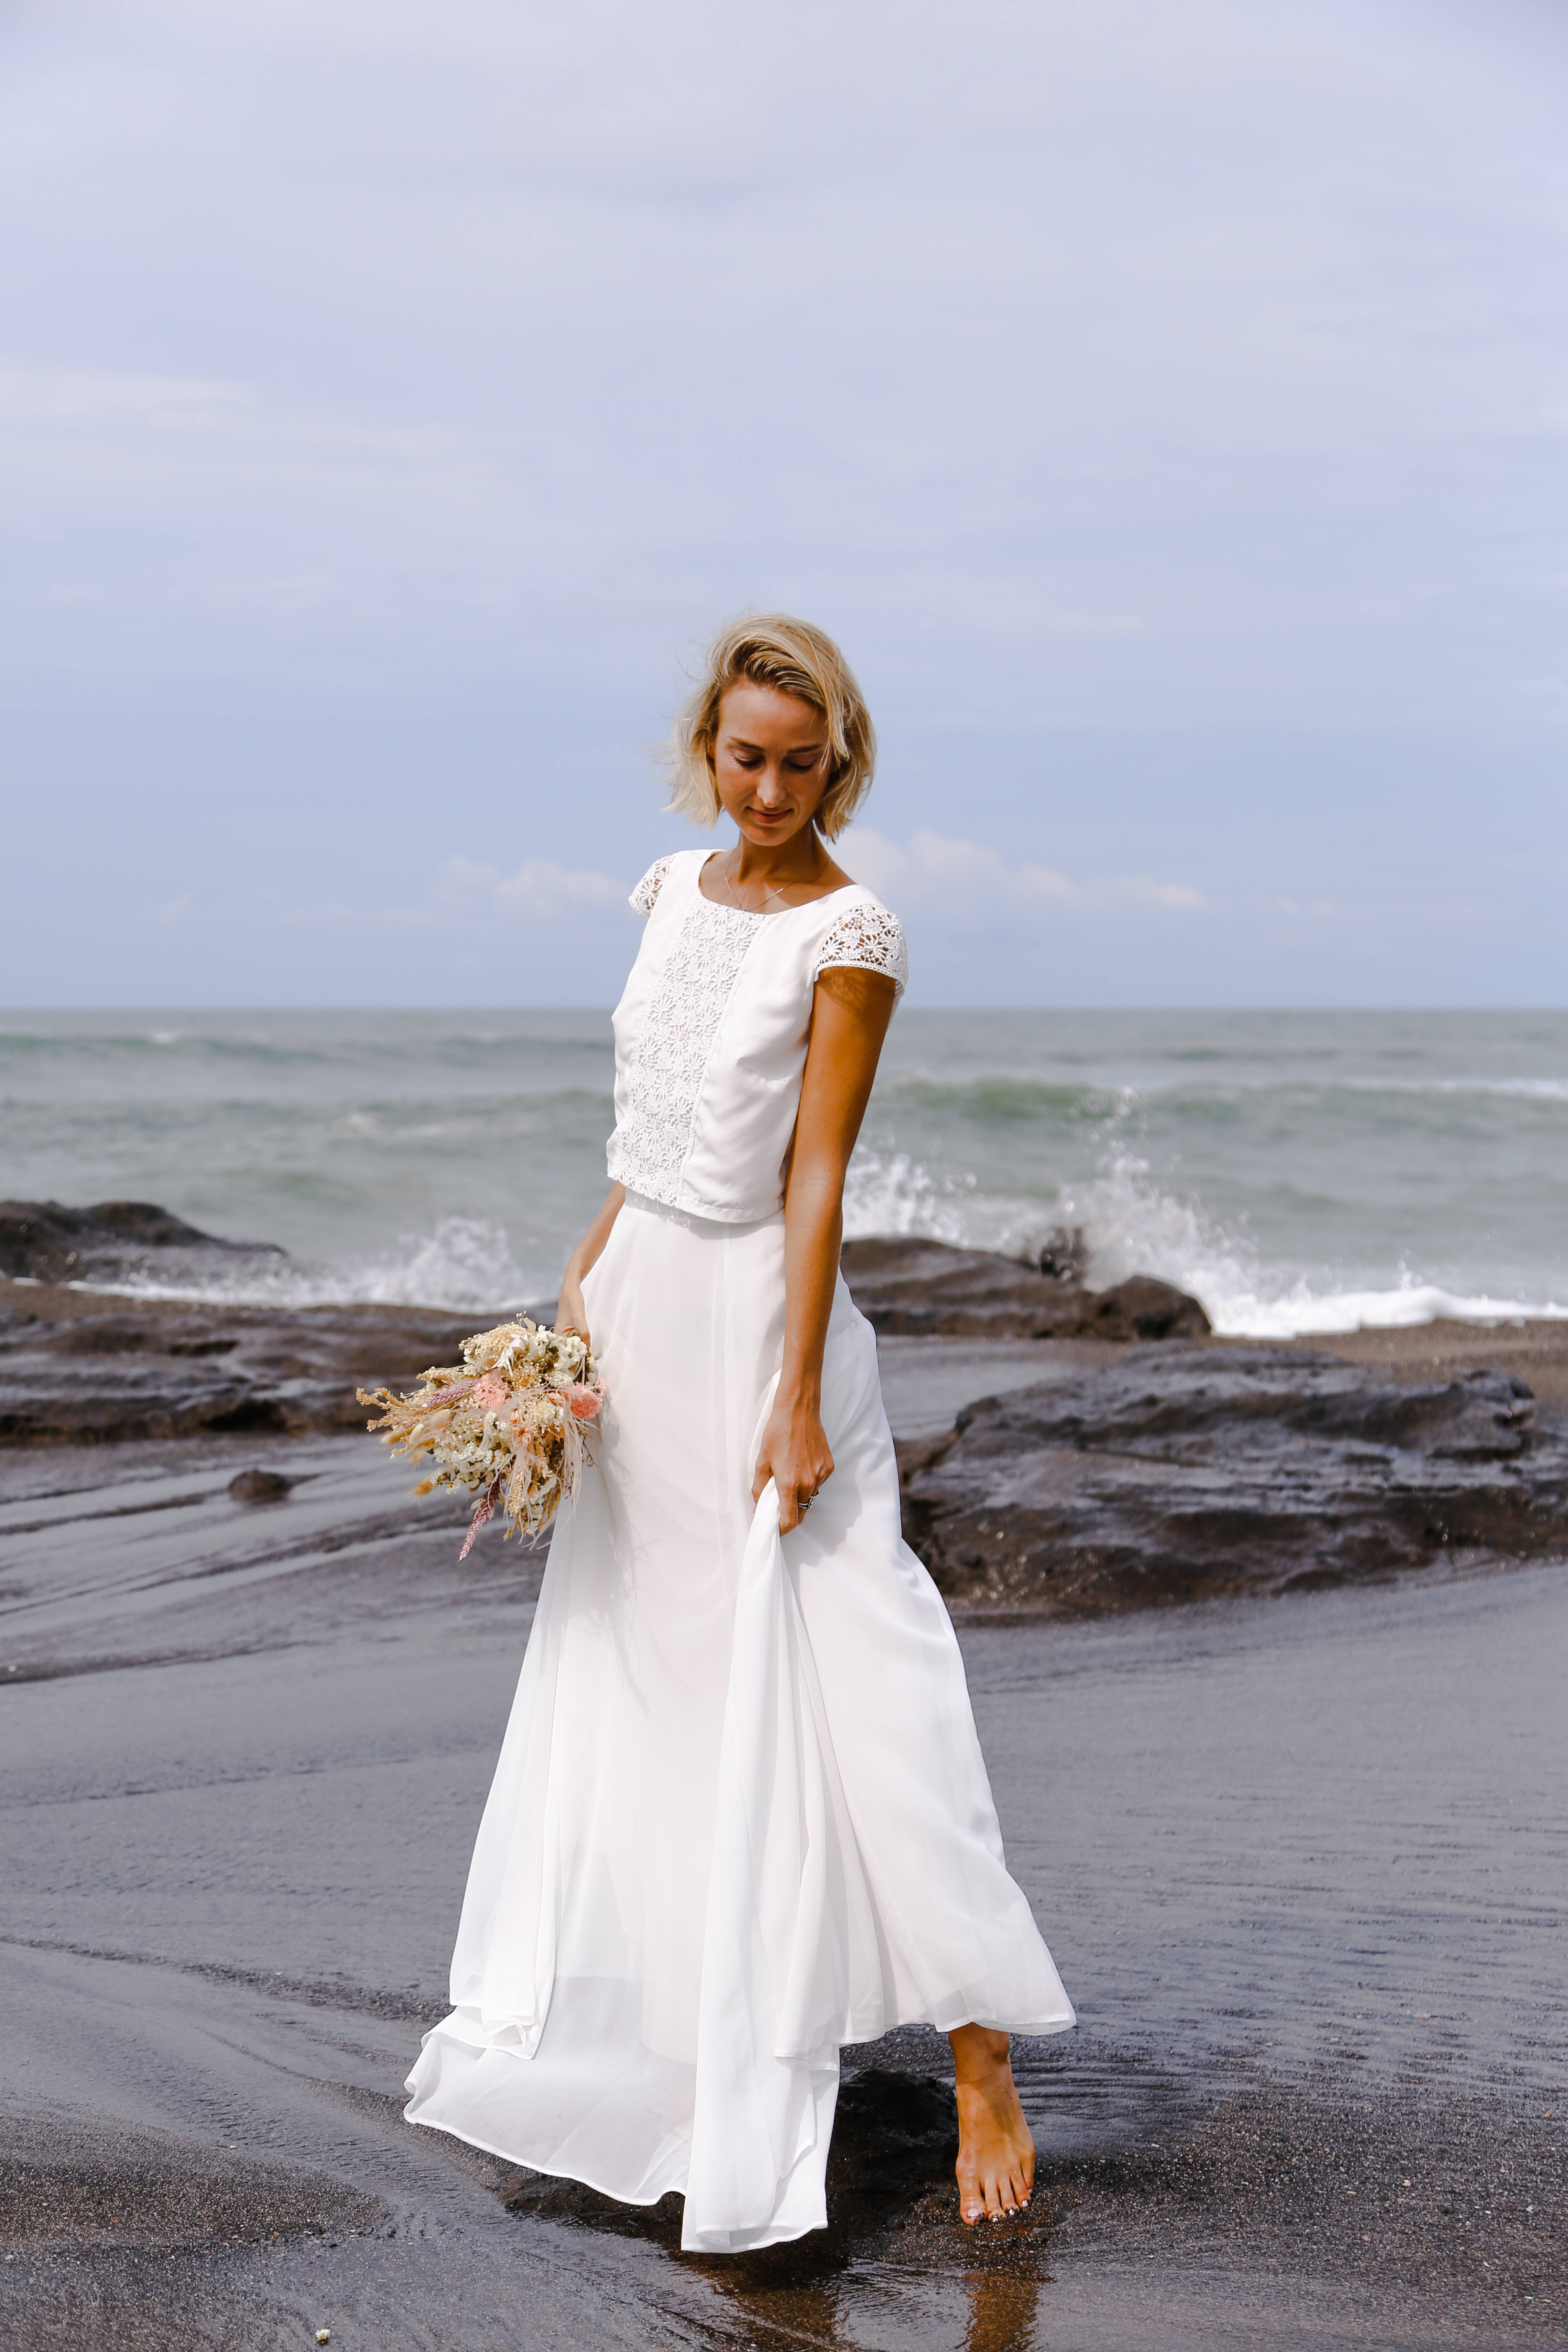 Duo wedding dress Bali